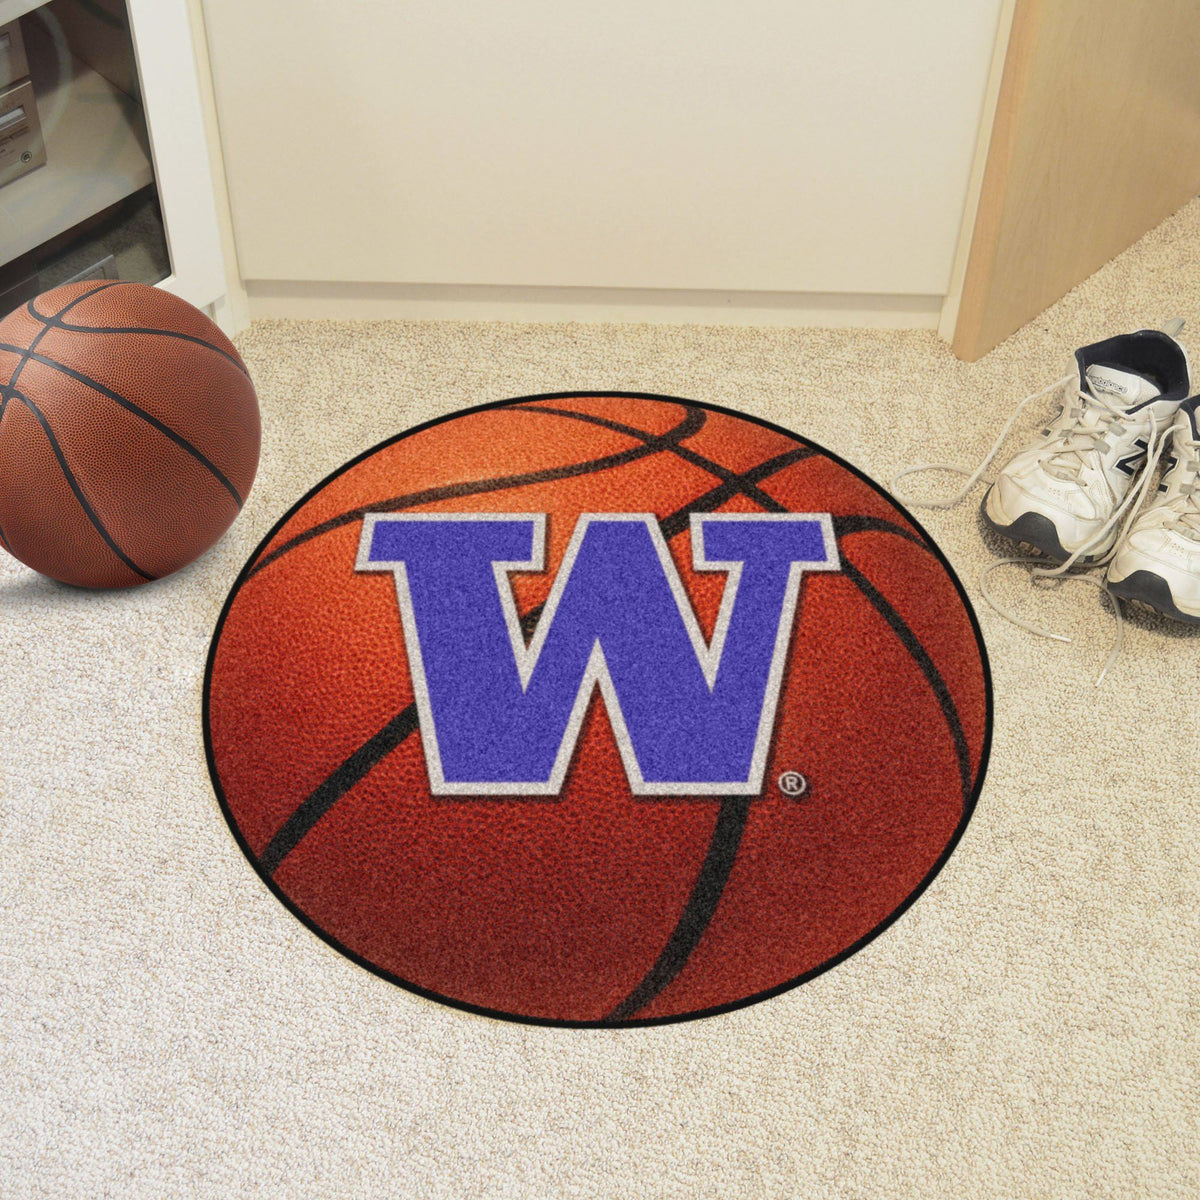 Collegiate - Basketball Mat: T - Z Collegiate Mats, Rectangular Mats, Basketball Mat, Collegiate, Home Fan Mats Washington